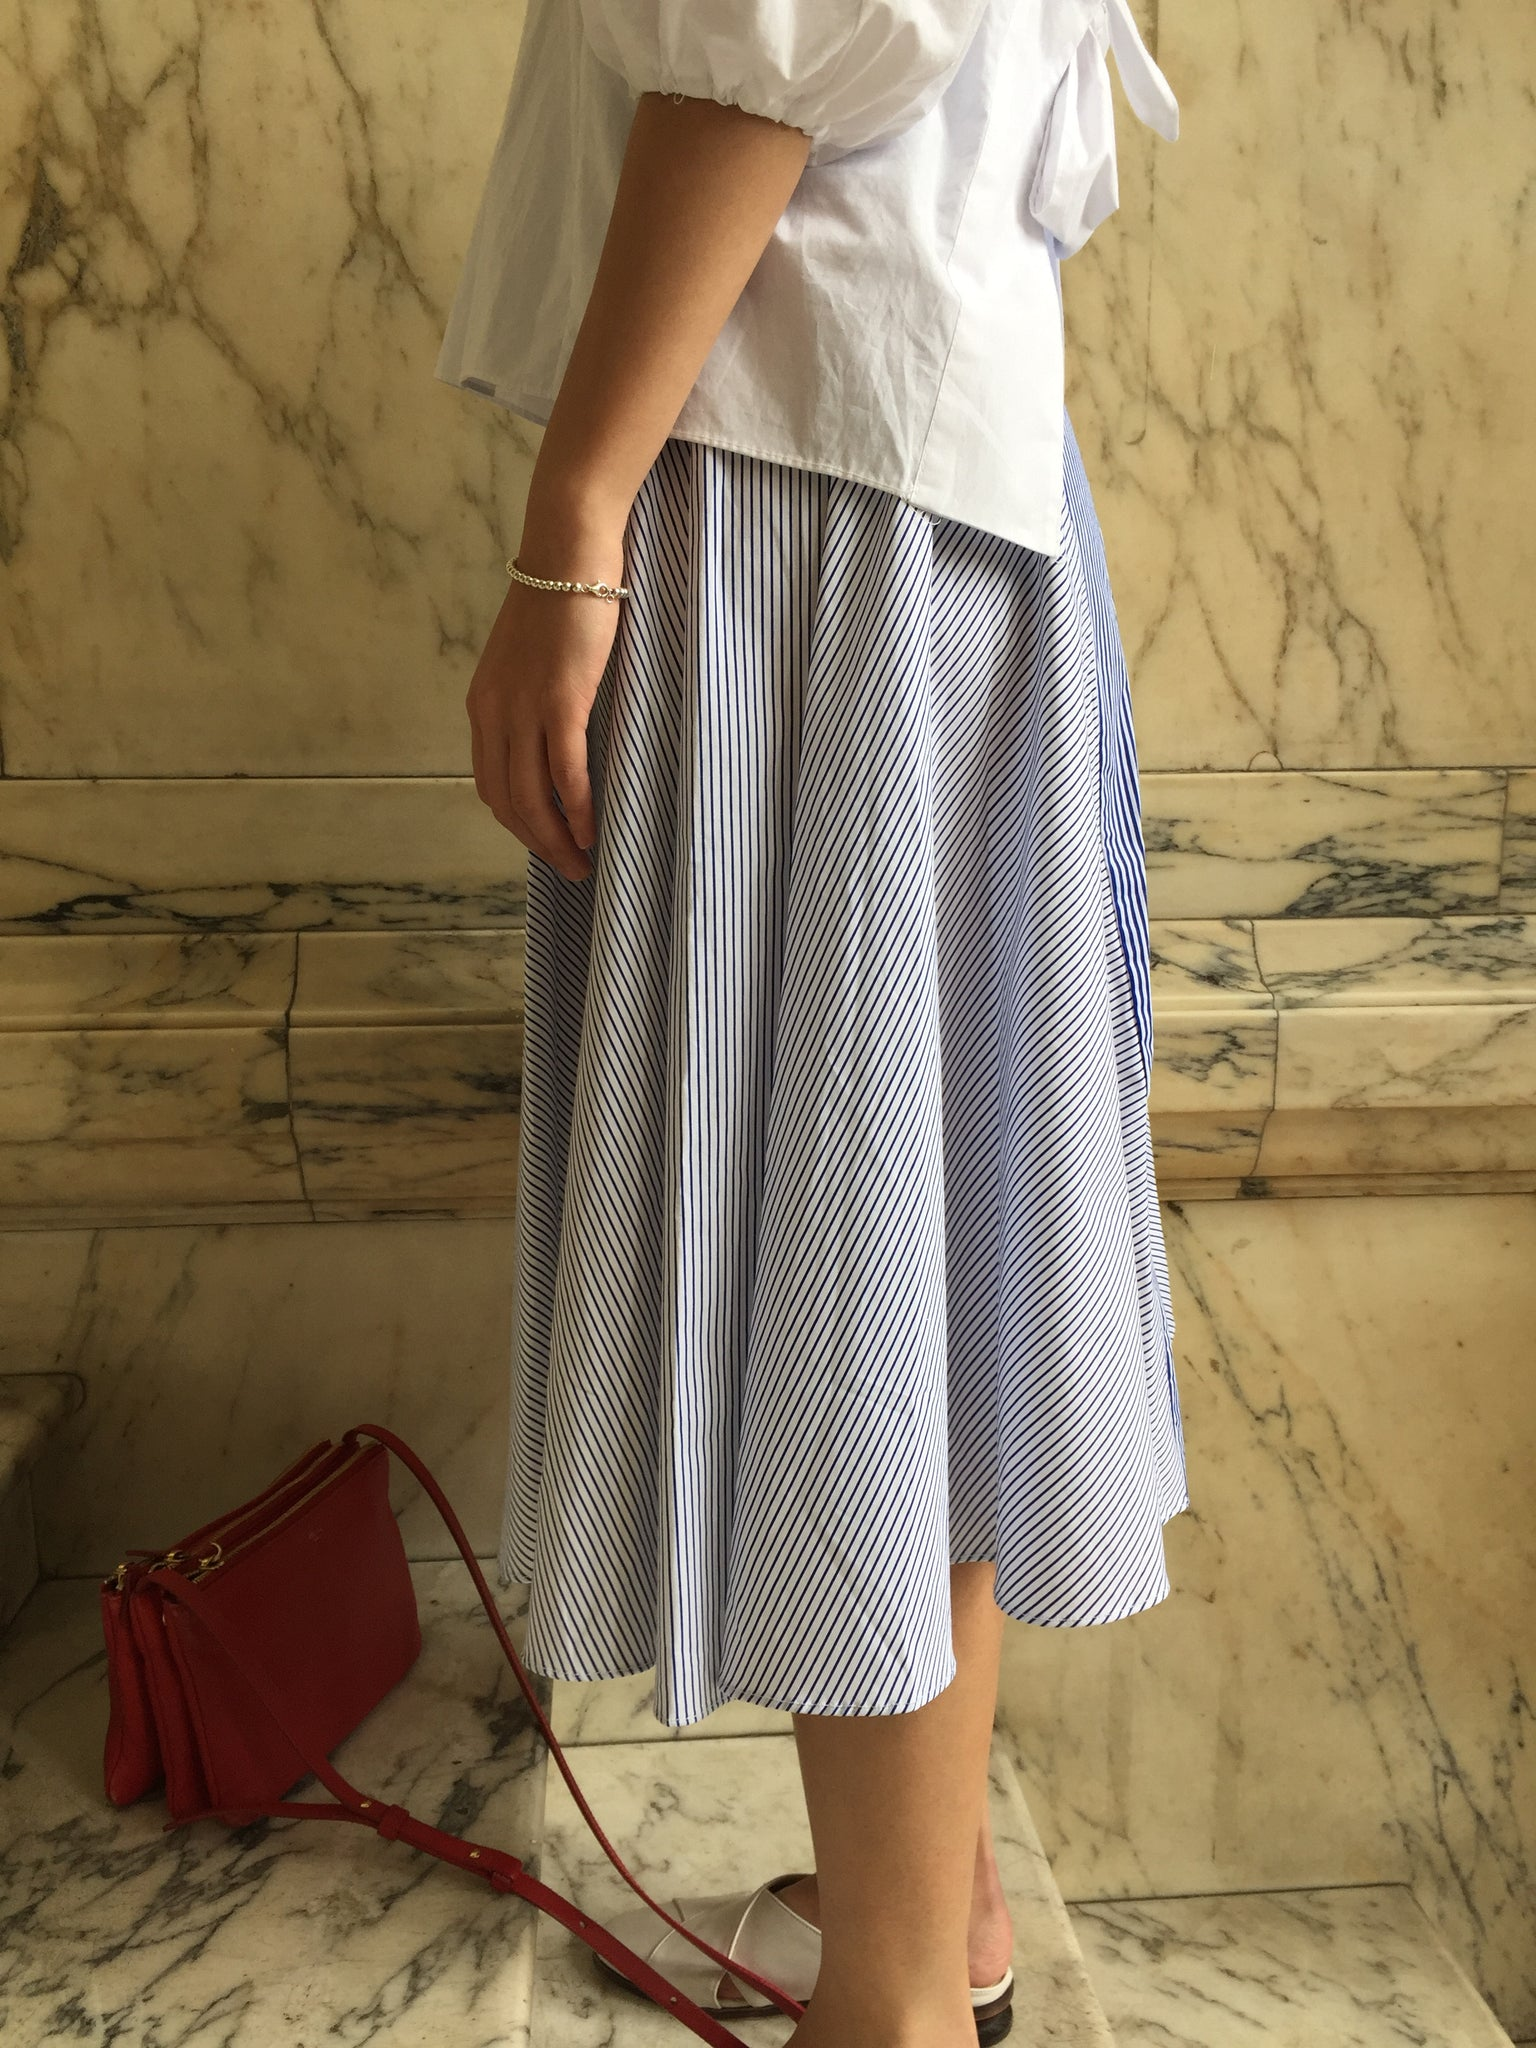 3D Stripe Skirt - whoami